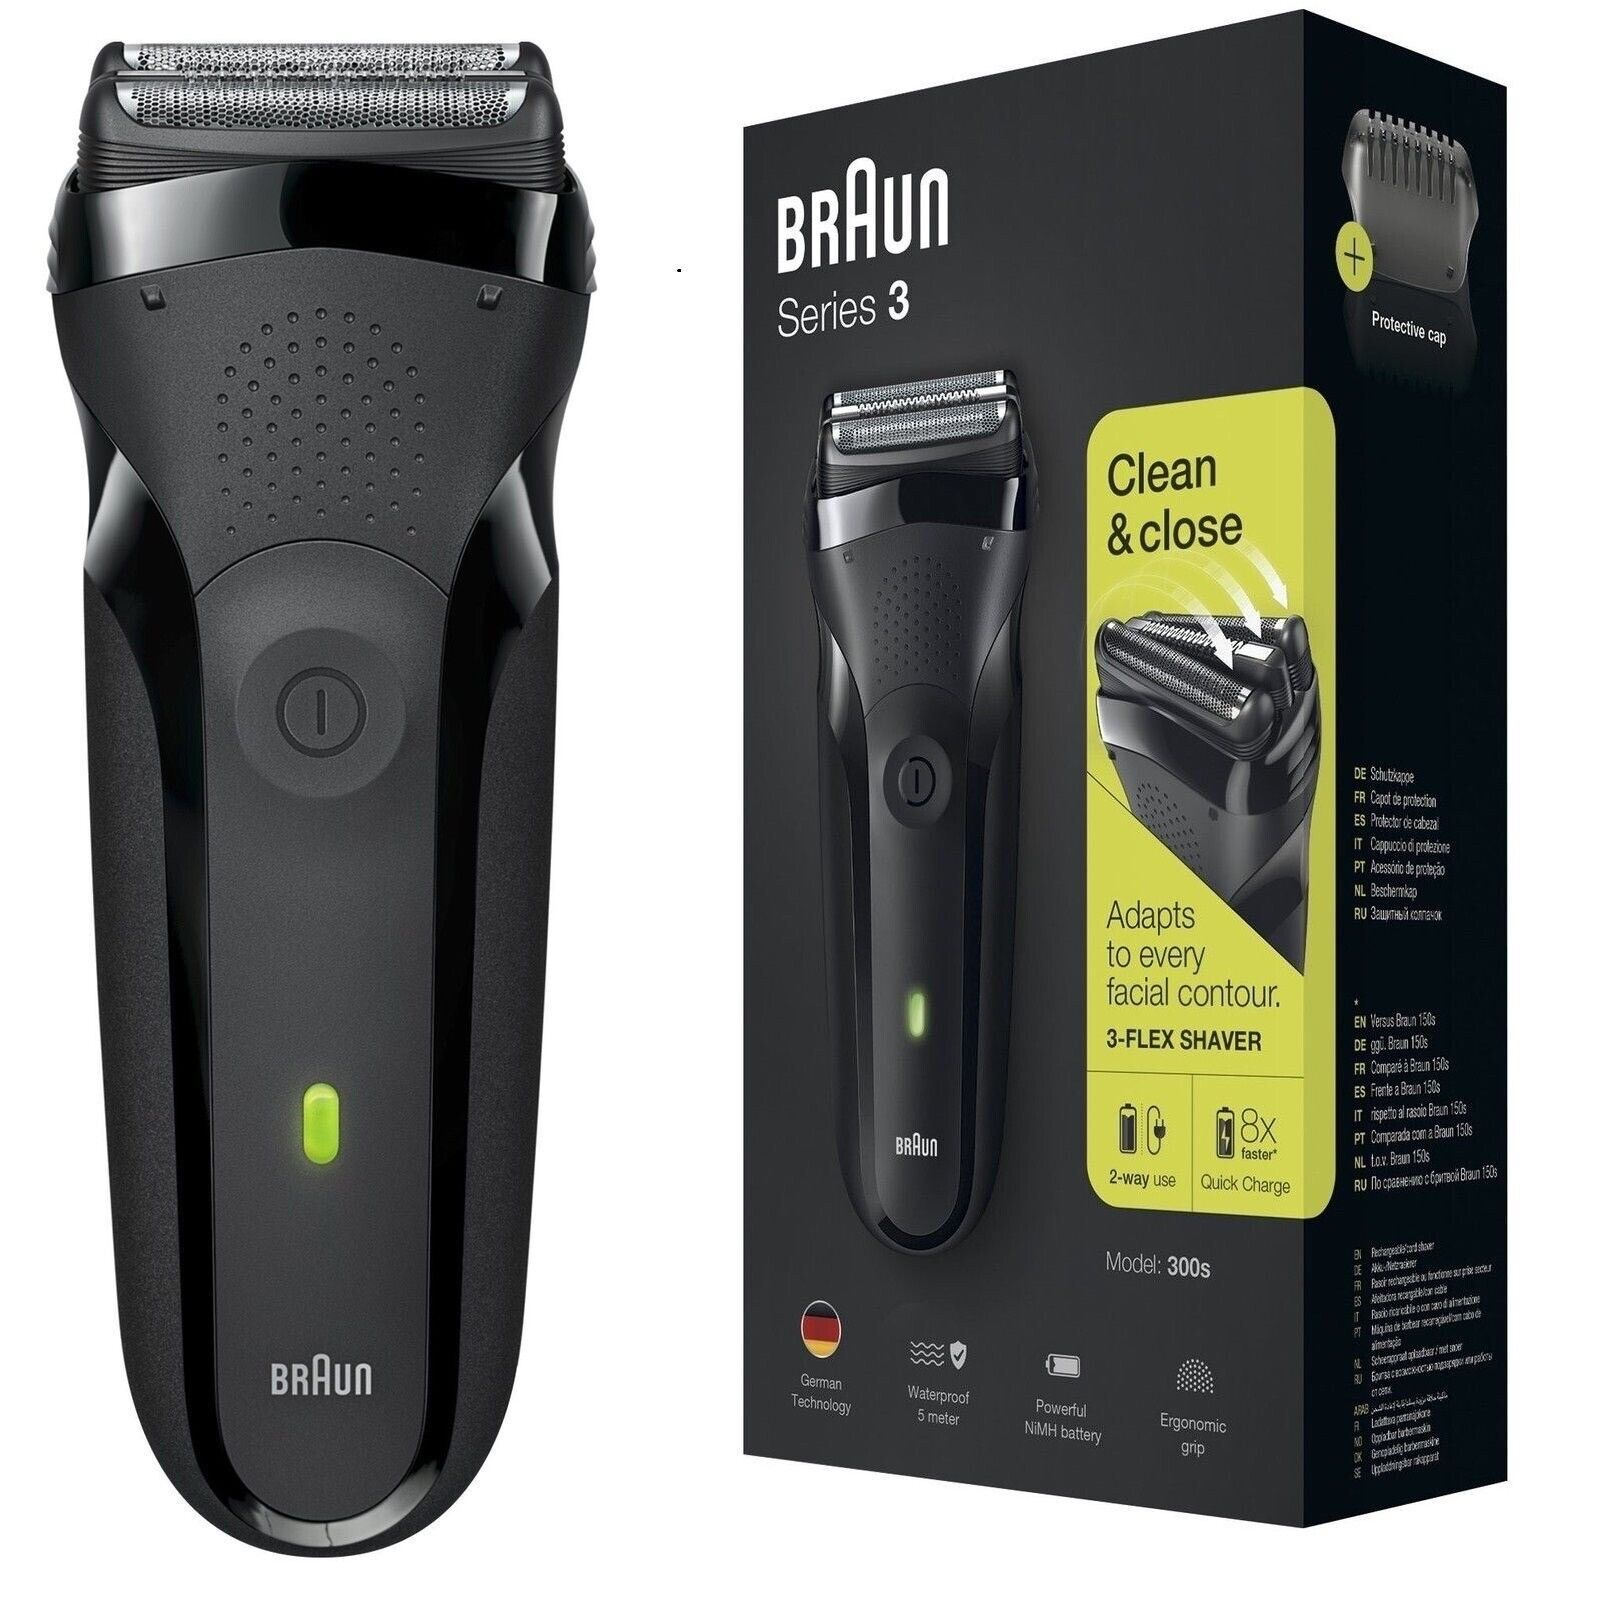 Braun 300s Series 3 Mens Rechargeable Electric Shaver Razor Panasonic Es Rw30 With Flexible Pivoting Head Waterproof Black 1 Of 6only Available See More